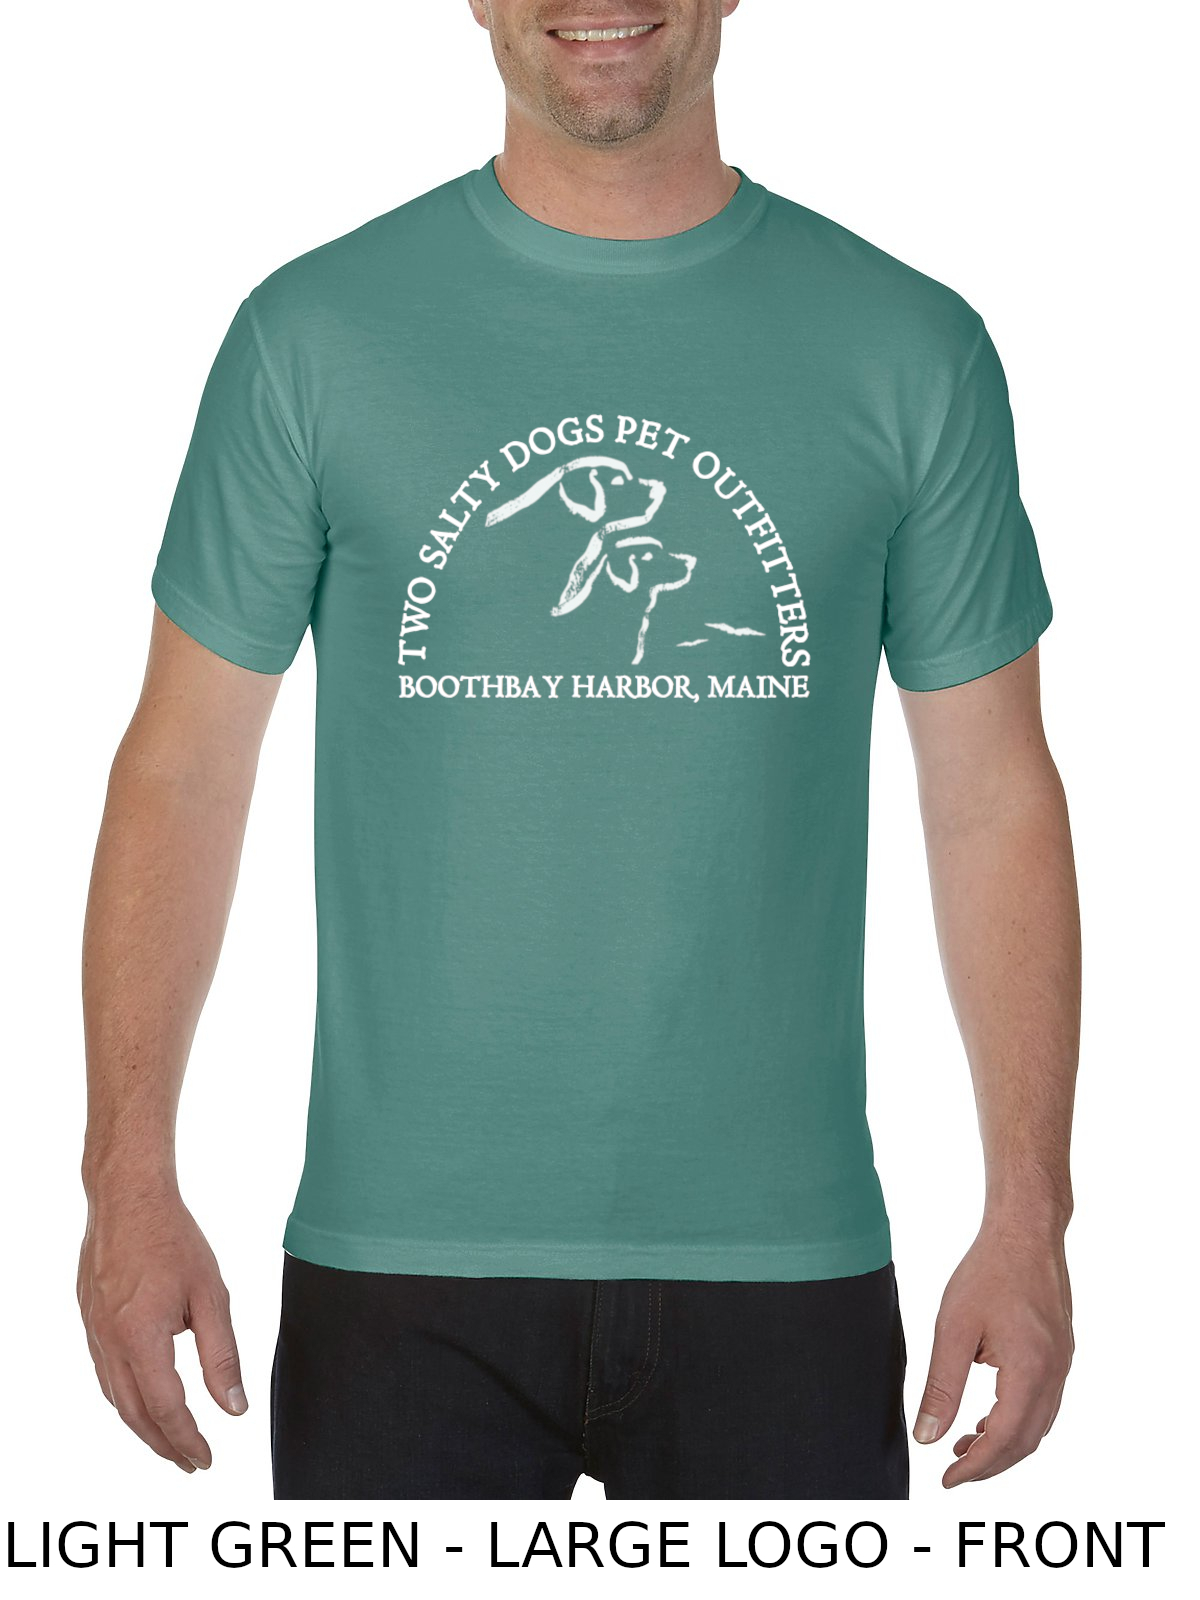 bbha-ss-t-shirt-no-pocket-light-green-front